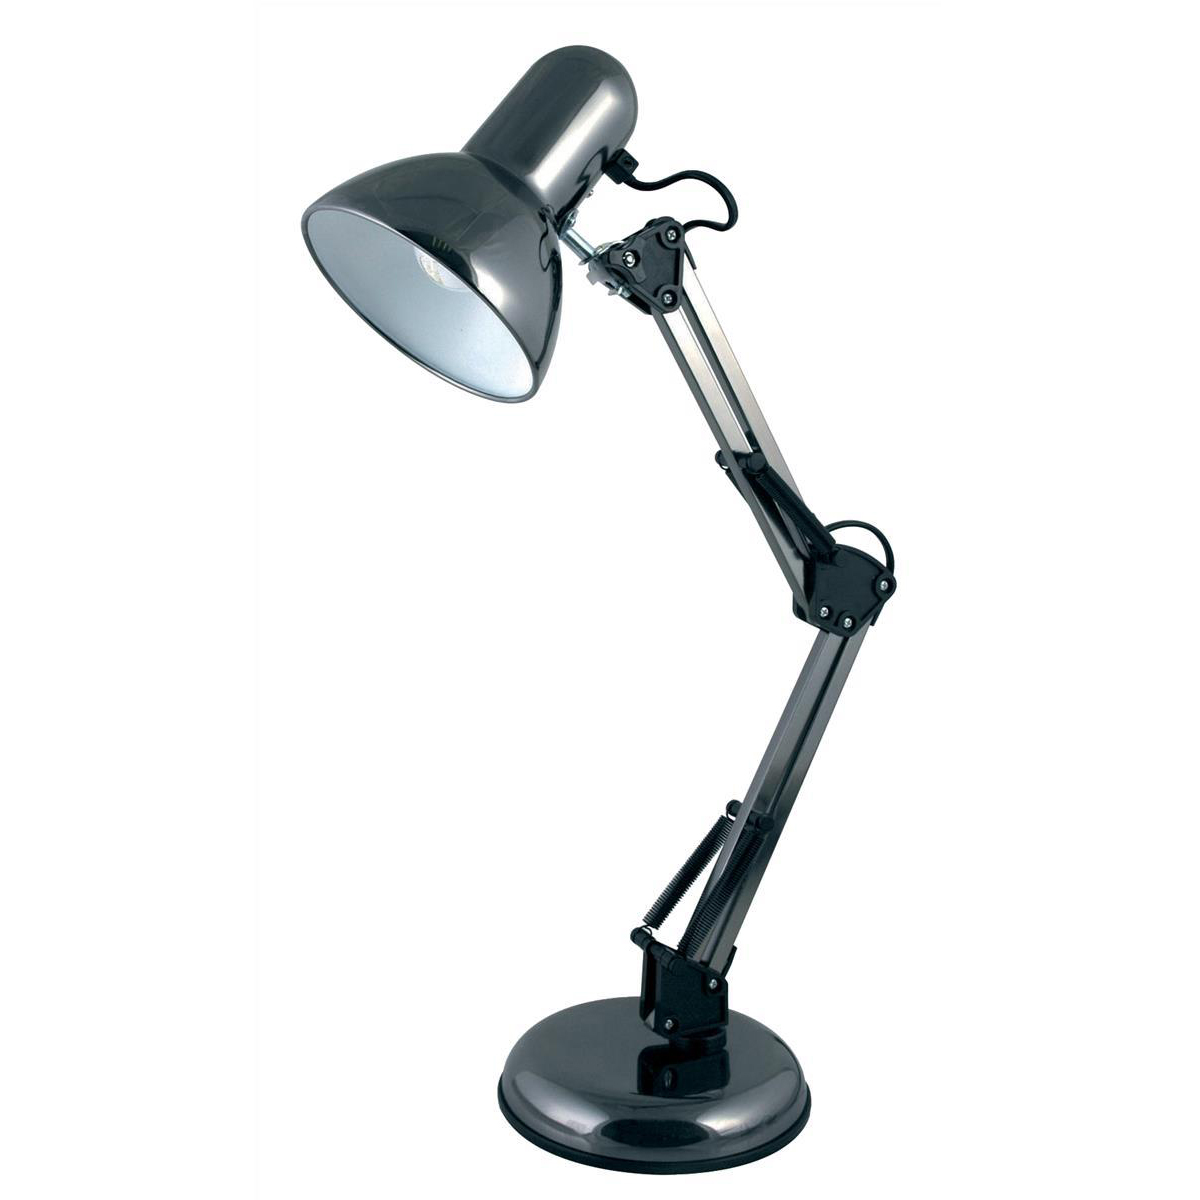 Desk Lamp Adjustable Arm 35W Maximum Height of 520mm Base Size of 150x150x40mm Black